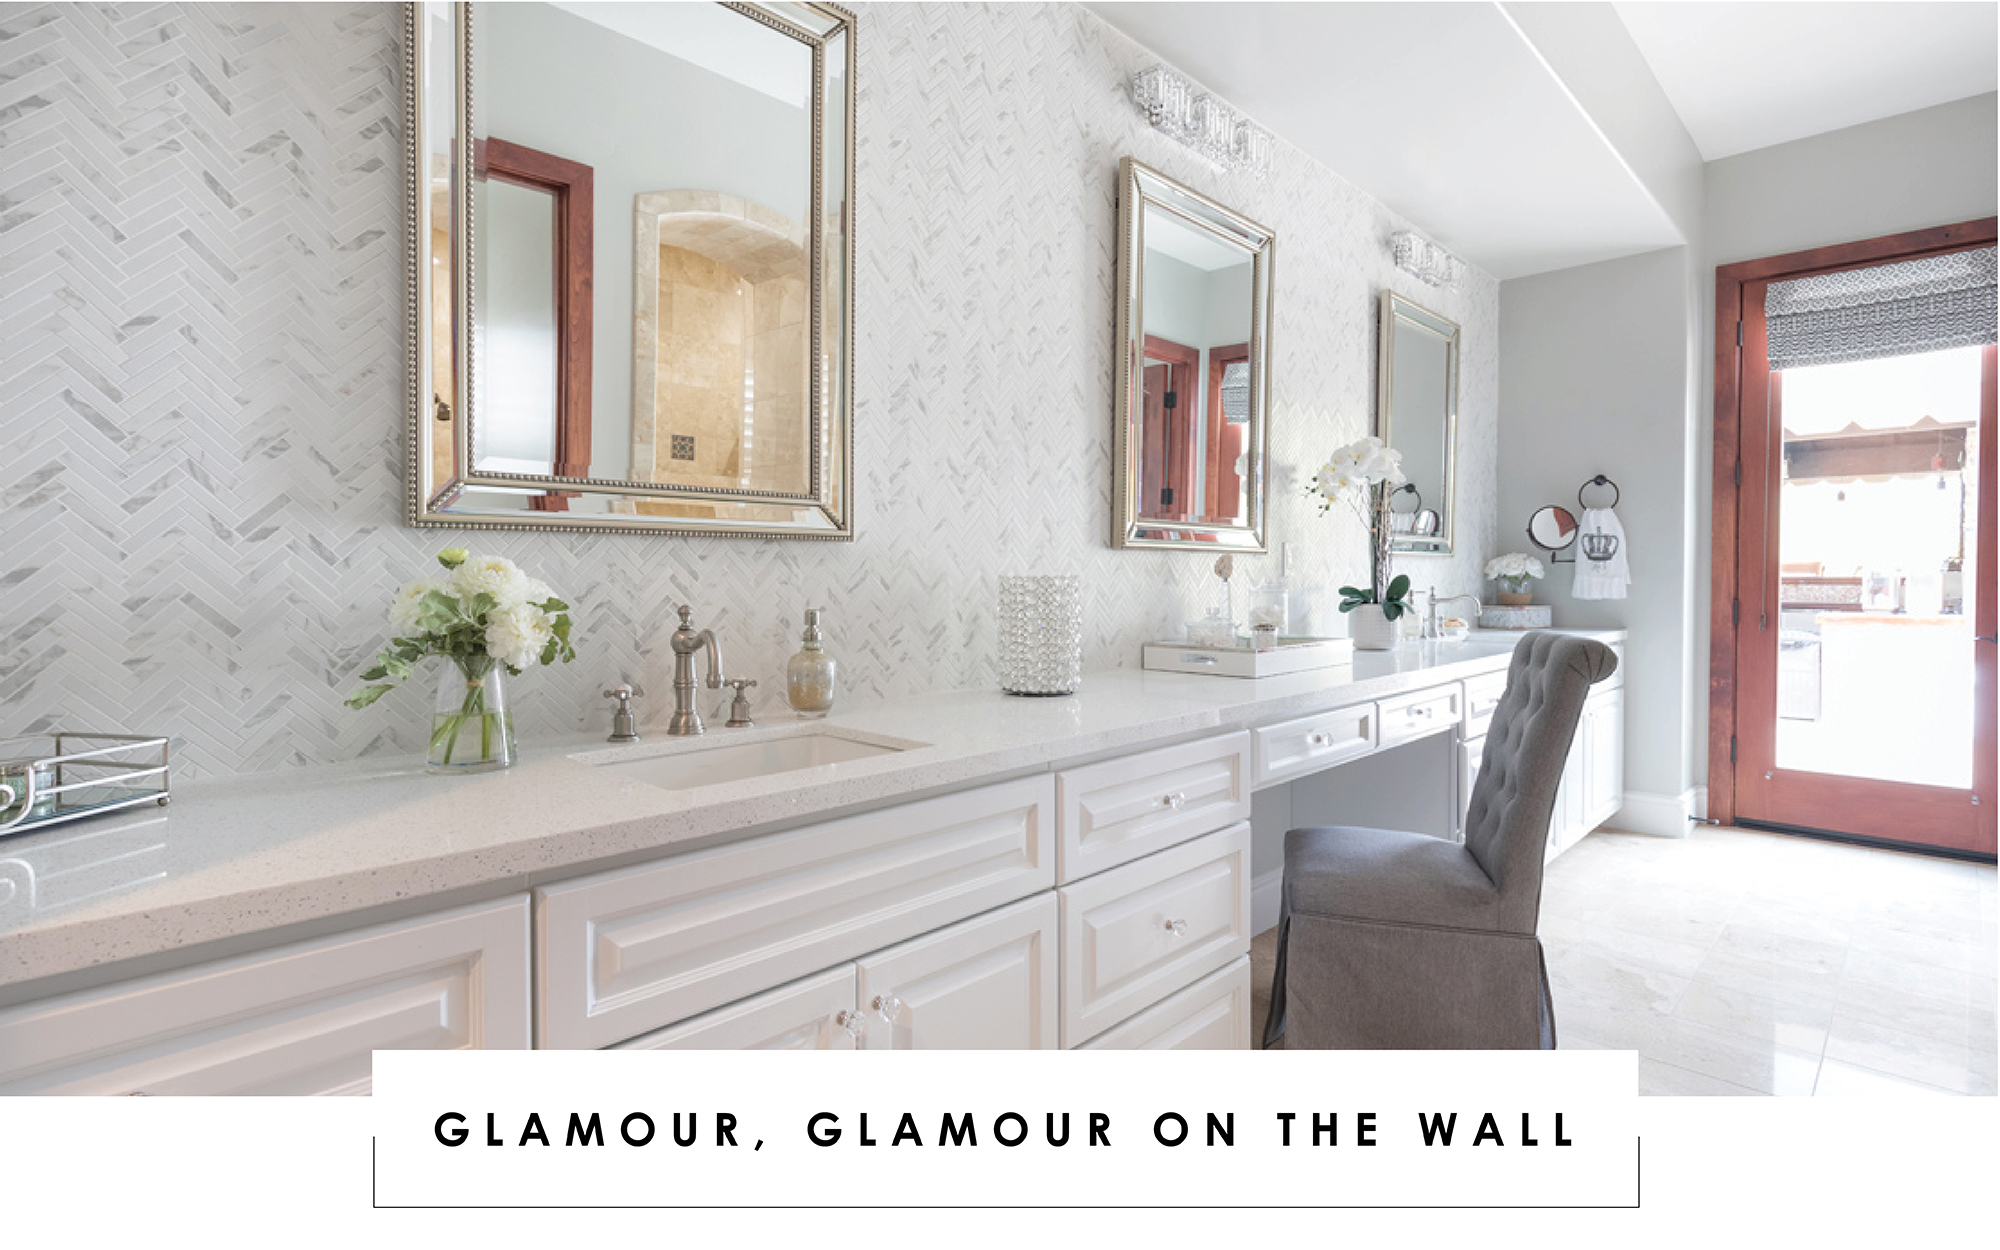 Glamour Glamour on the Wall Cover Kitchen.jpg